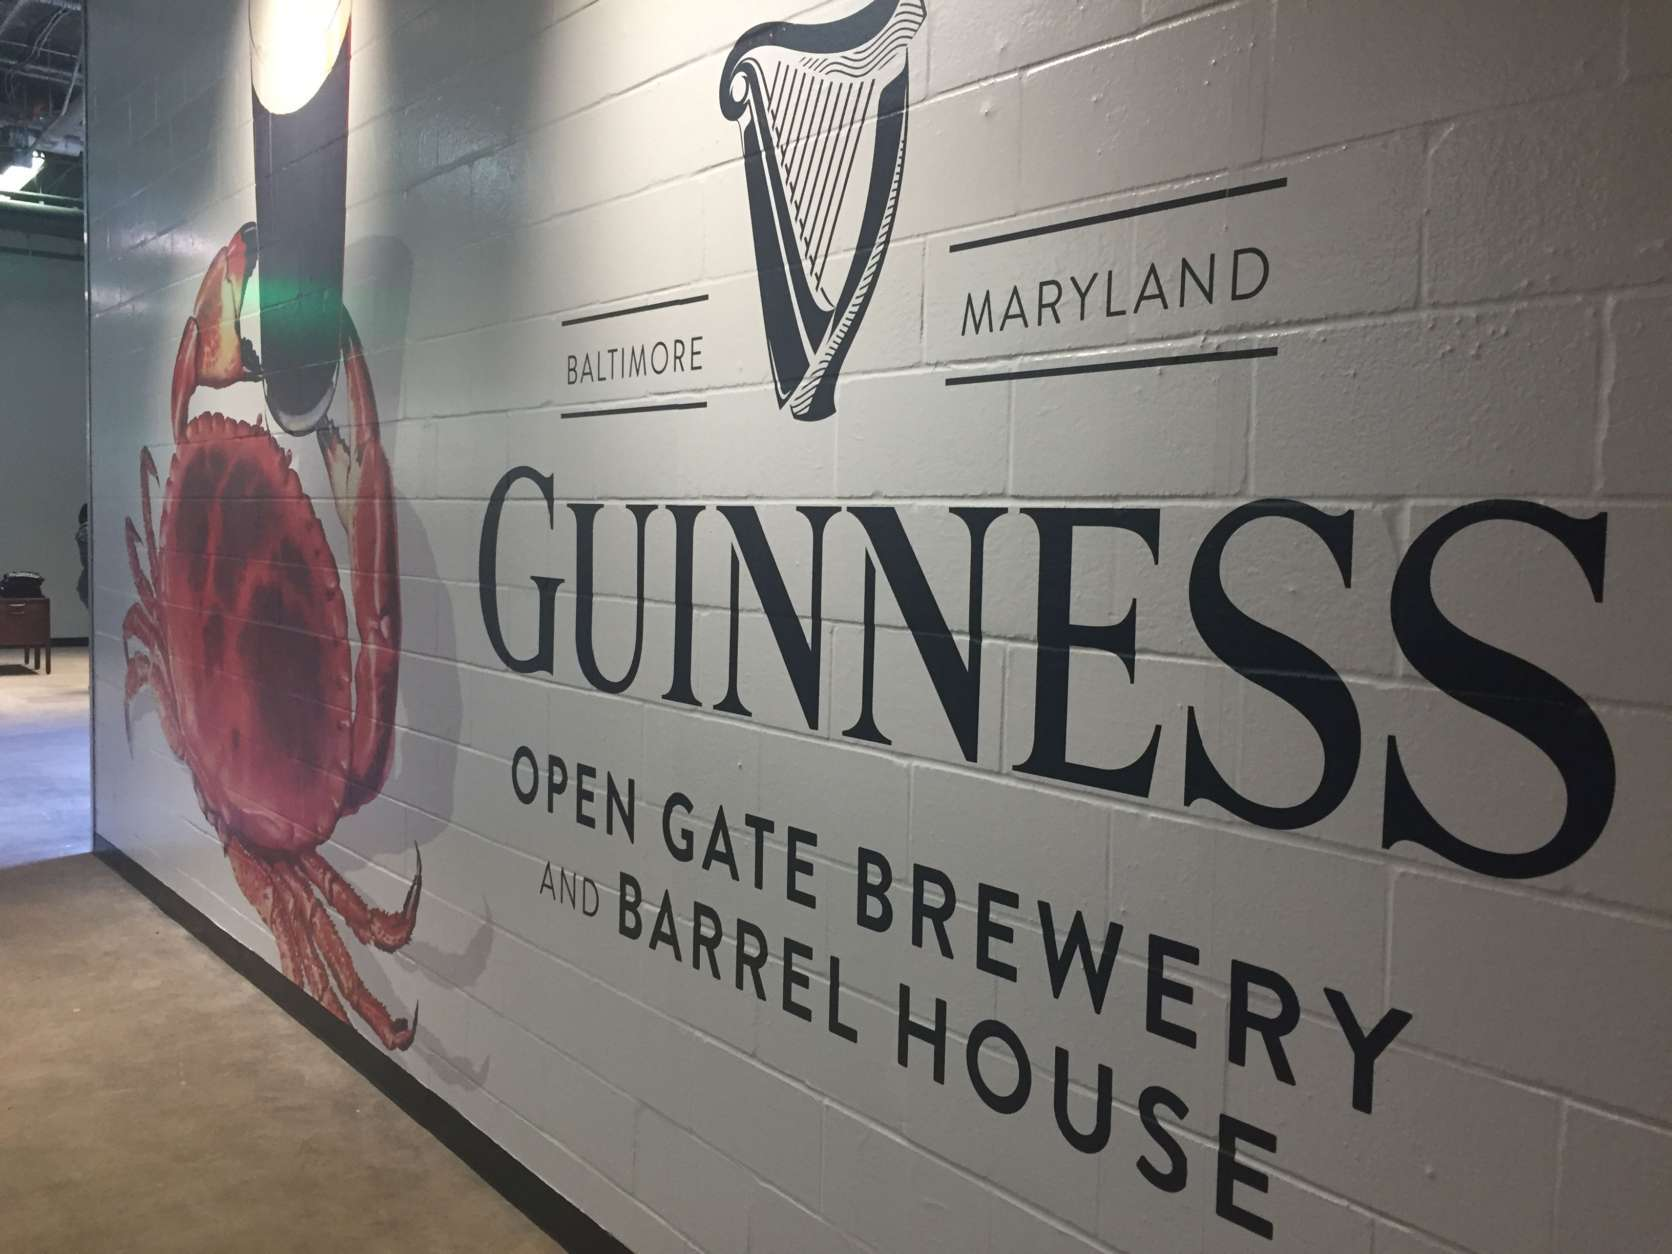 Guinness opens the doors Friday to its test taproom in Halethorpe, Maryland, offering a first look at what will be the Guinness Open Gate Brewery & Barrel House, a brewery and visitors center. (WTOP/Jack Pointer)